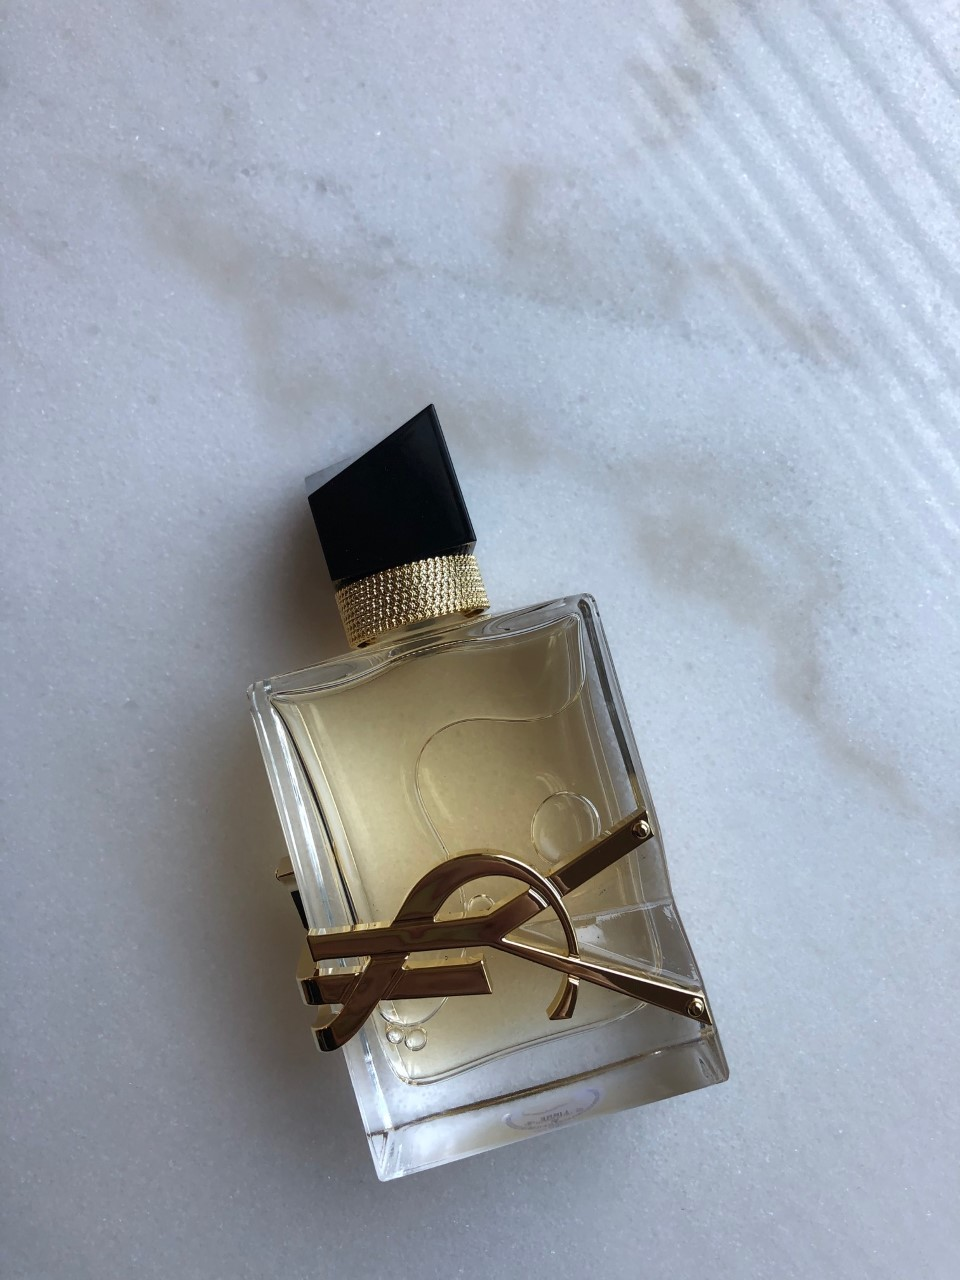 Yves Saint Laurent Libre Eau de Parfum: A quick review